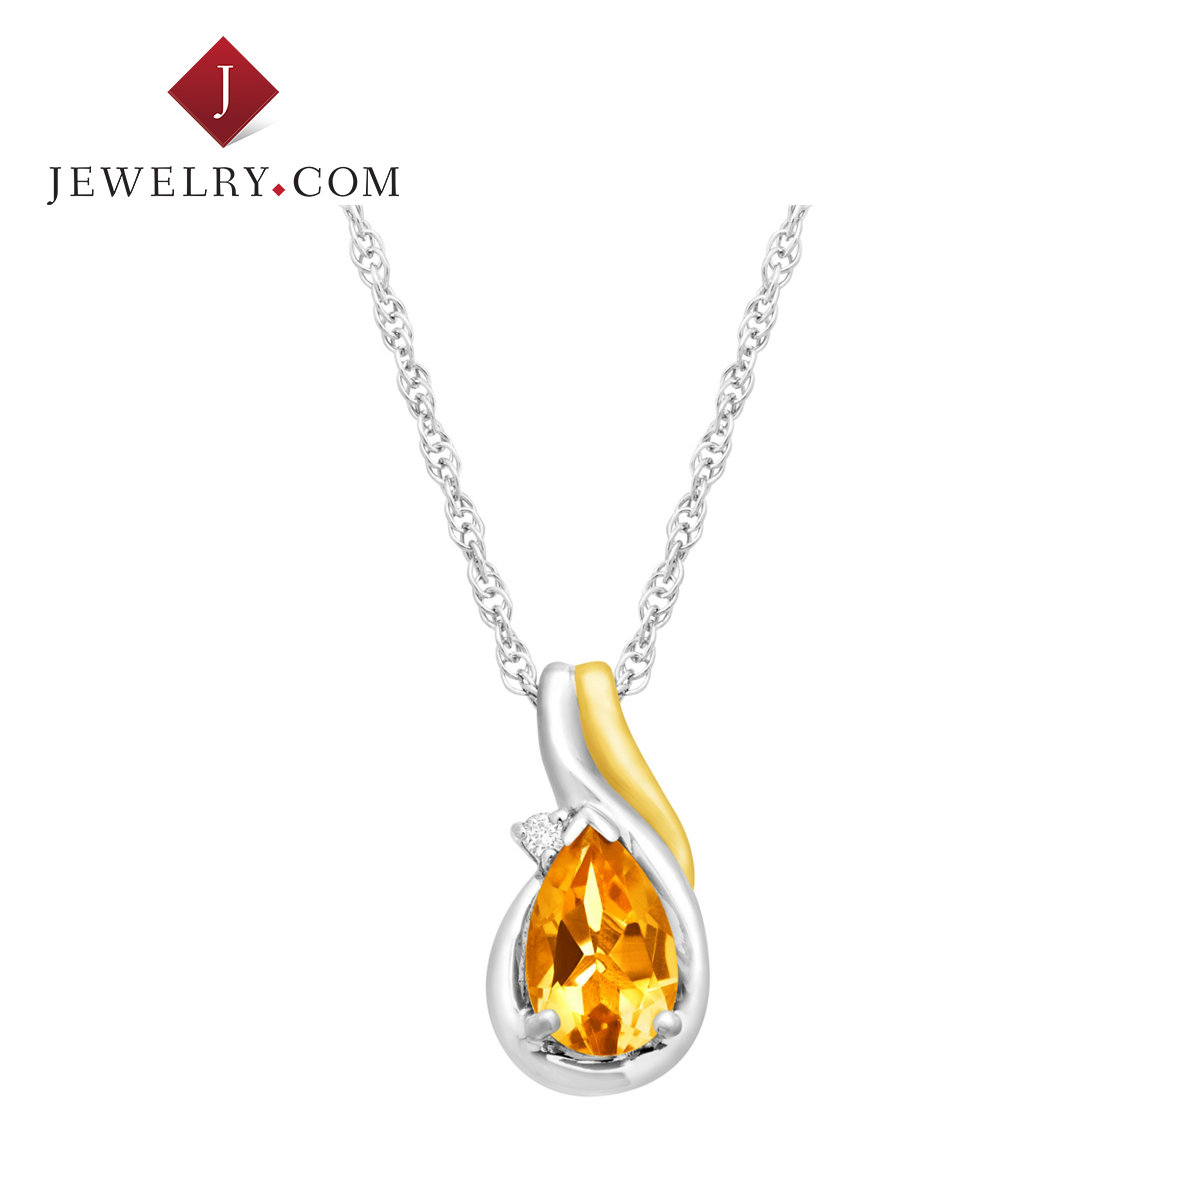 Jewelry.com official silver 925 k gold crystal pendant ms. simple and elegant temperament charm jewelry